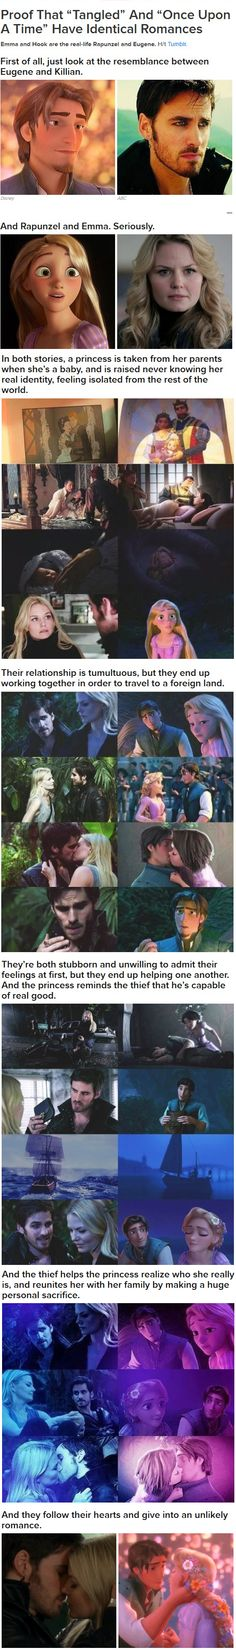 The Emma & Hook and Rapunzel & Flynn parallels!!!! Holy crap...I never even realized